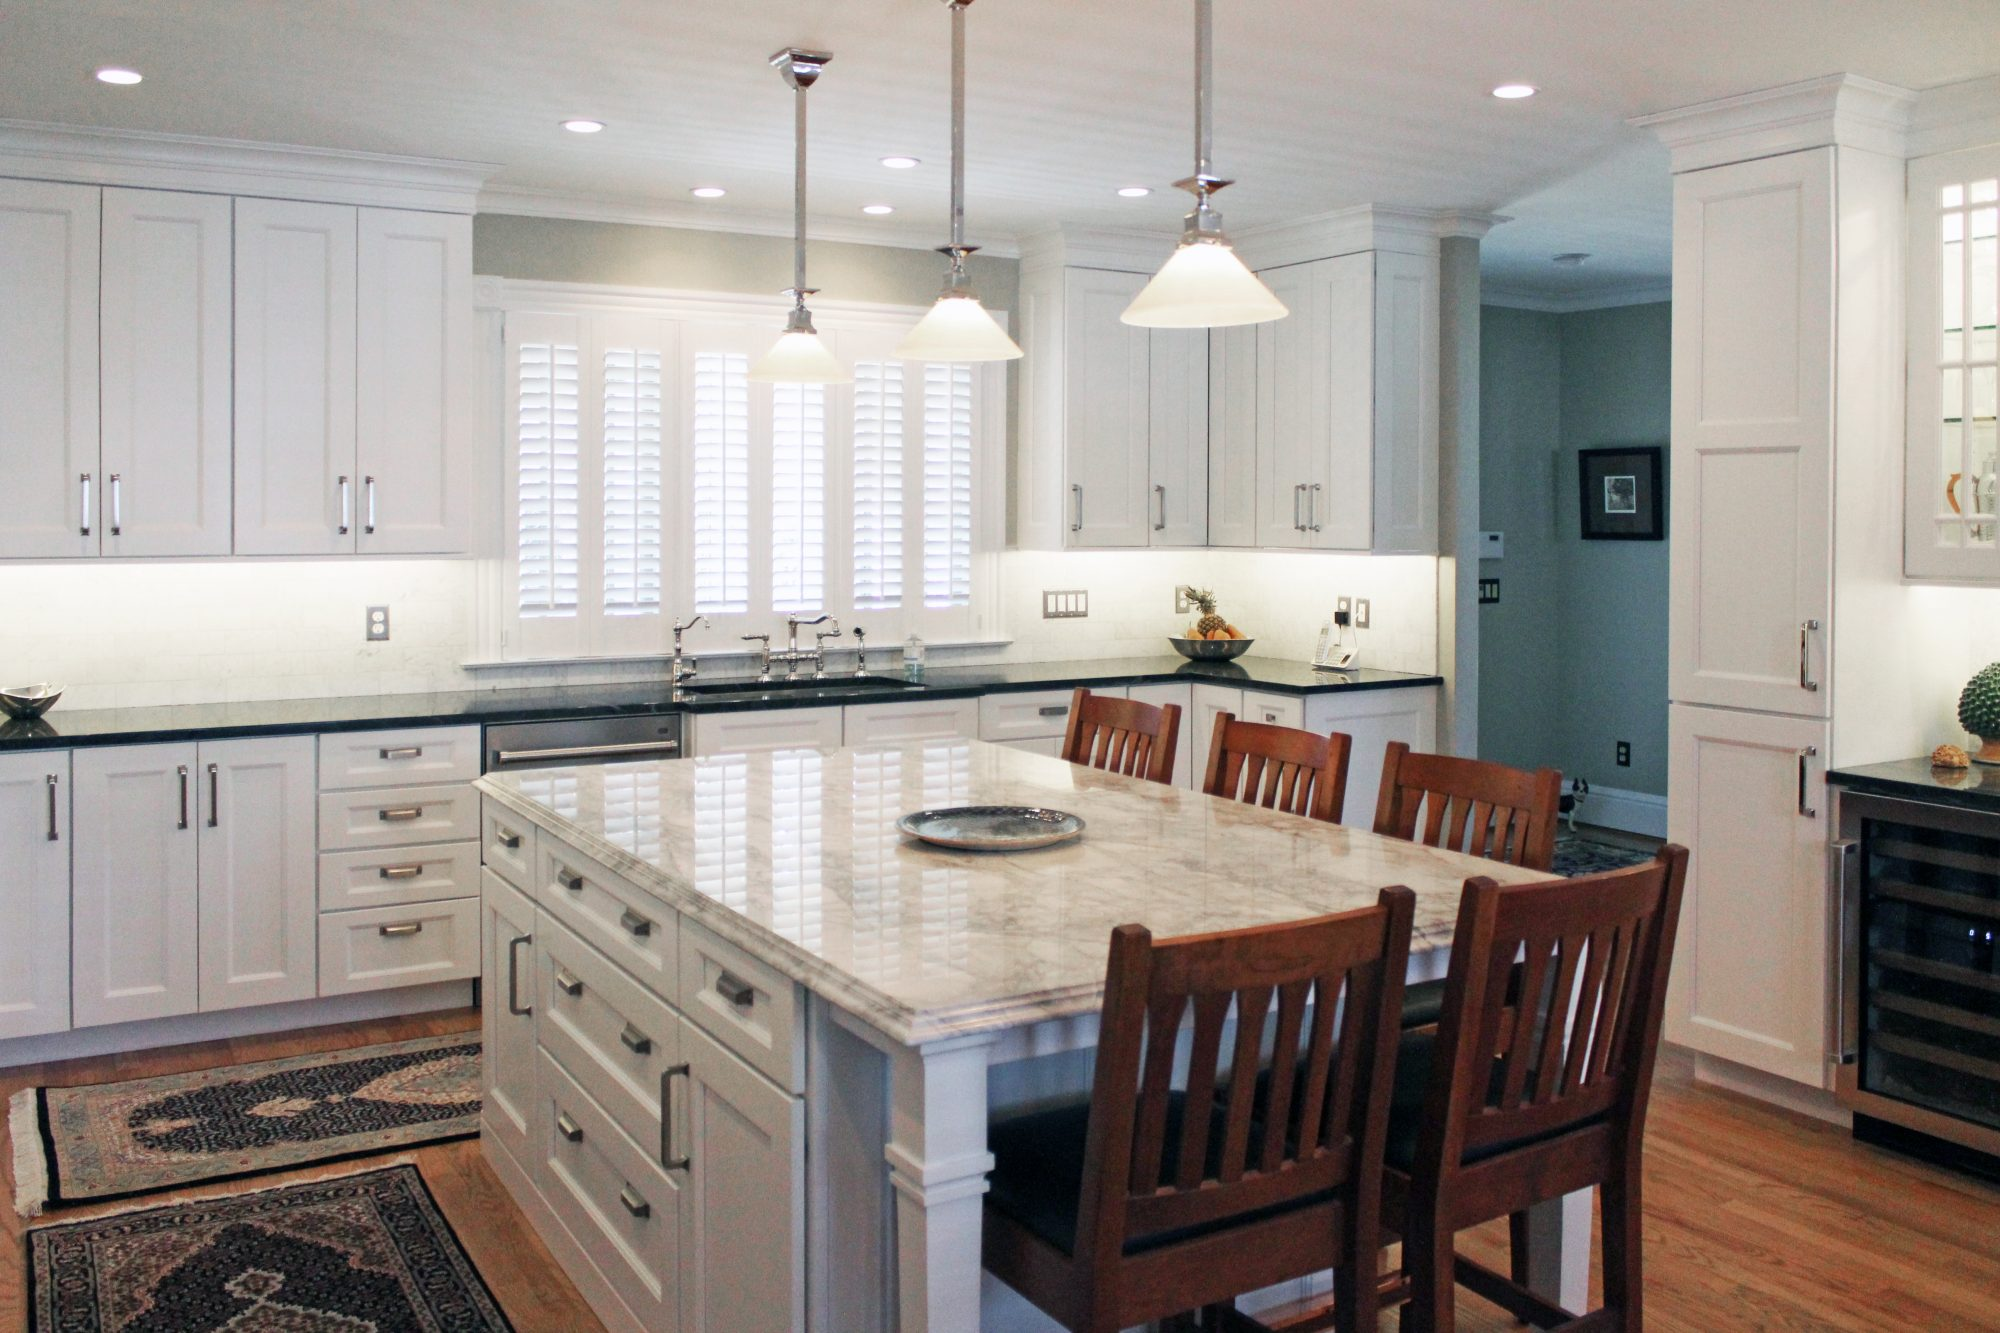 A Kitchen Remodel in Suffield, CT